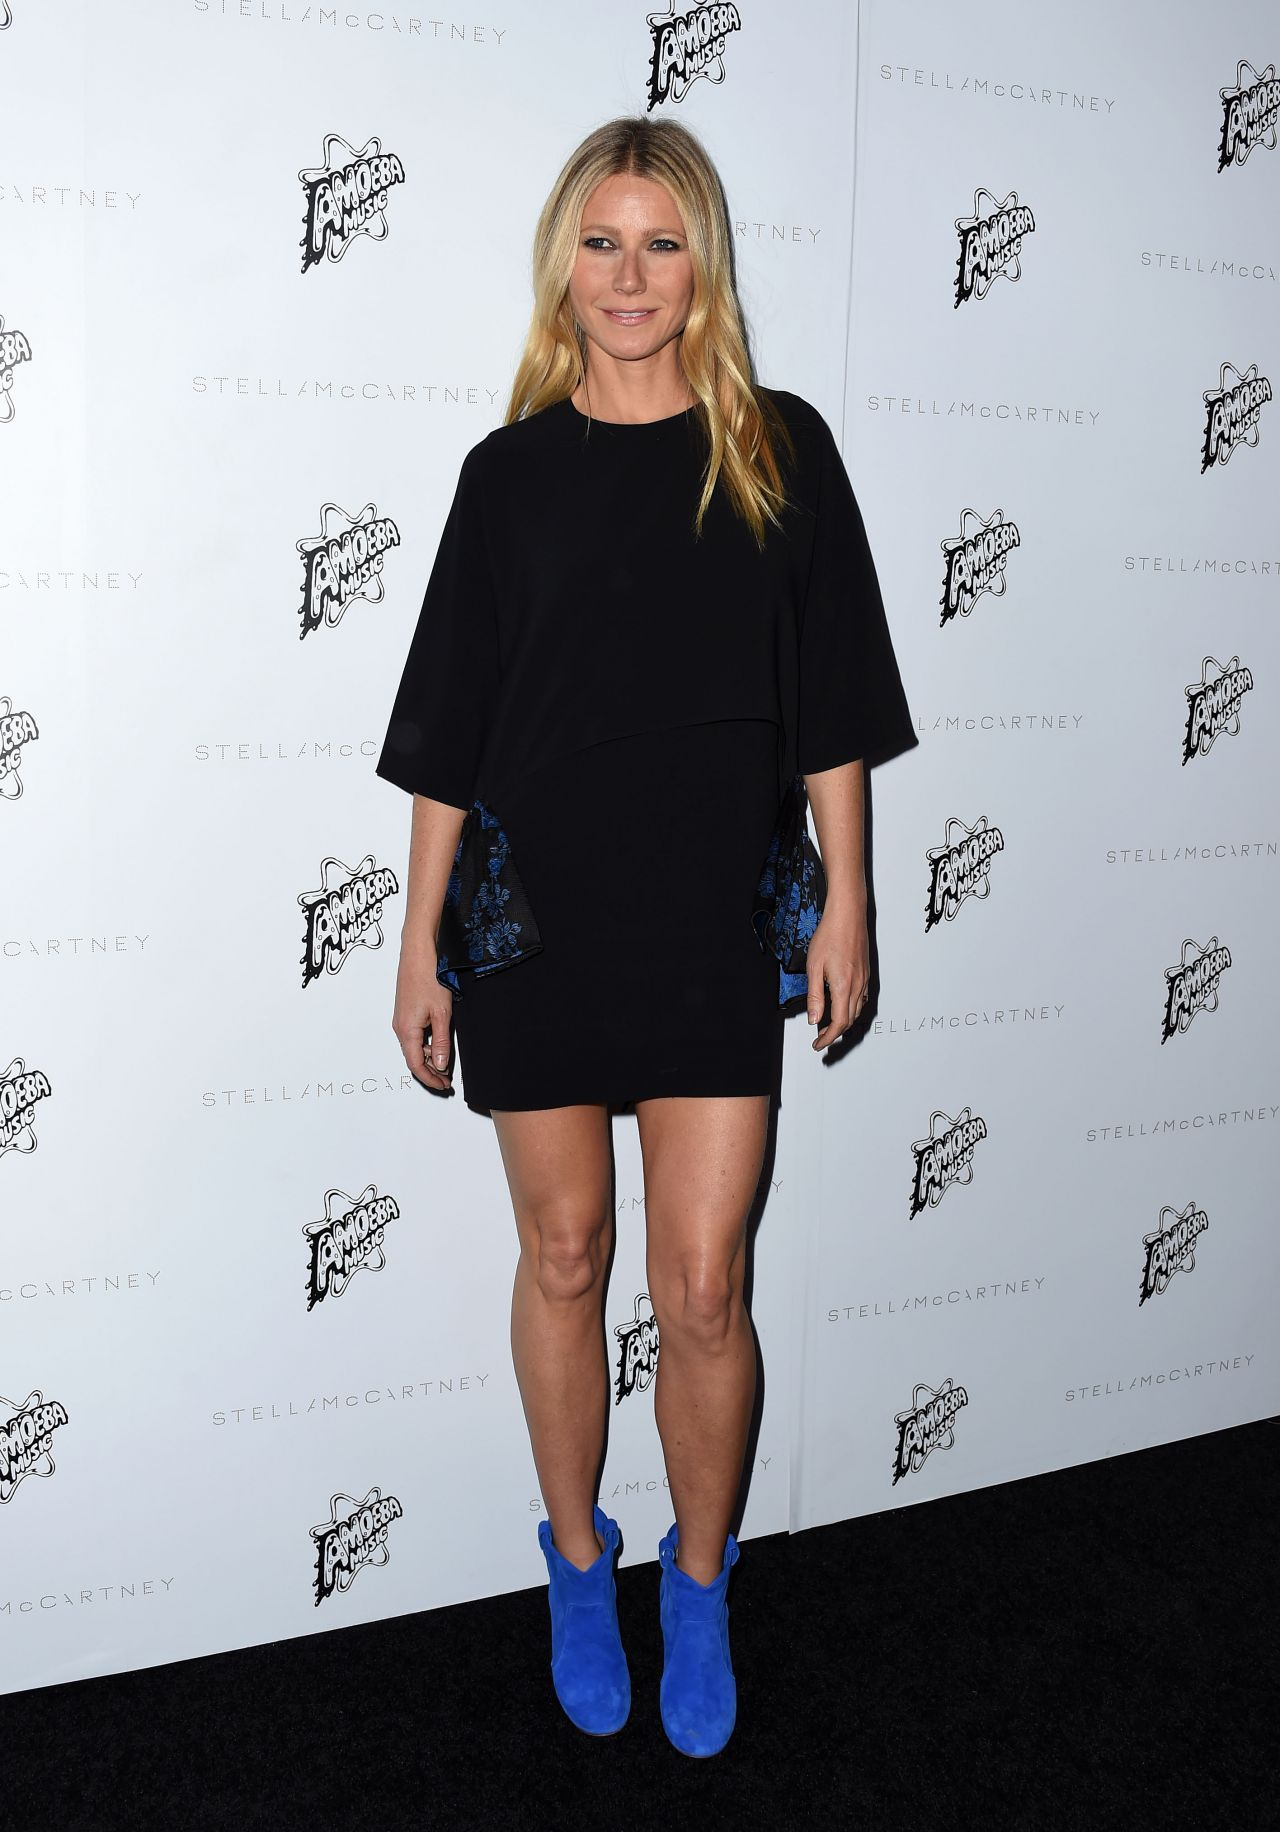 gwyneth-paltrow-stella-mccartney-autumn-2016-presentation-in-los-angeles-ca-6